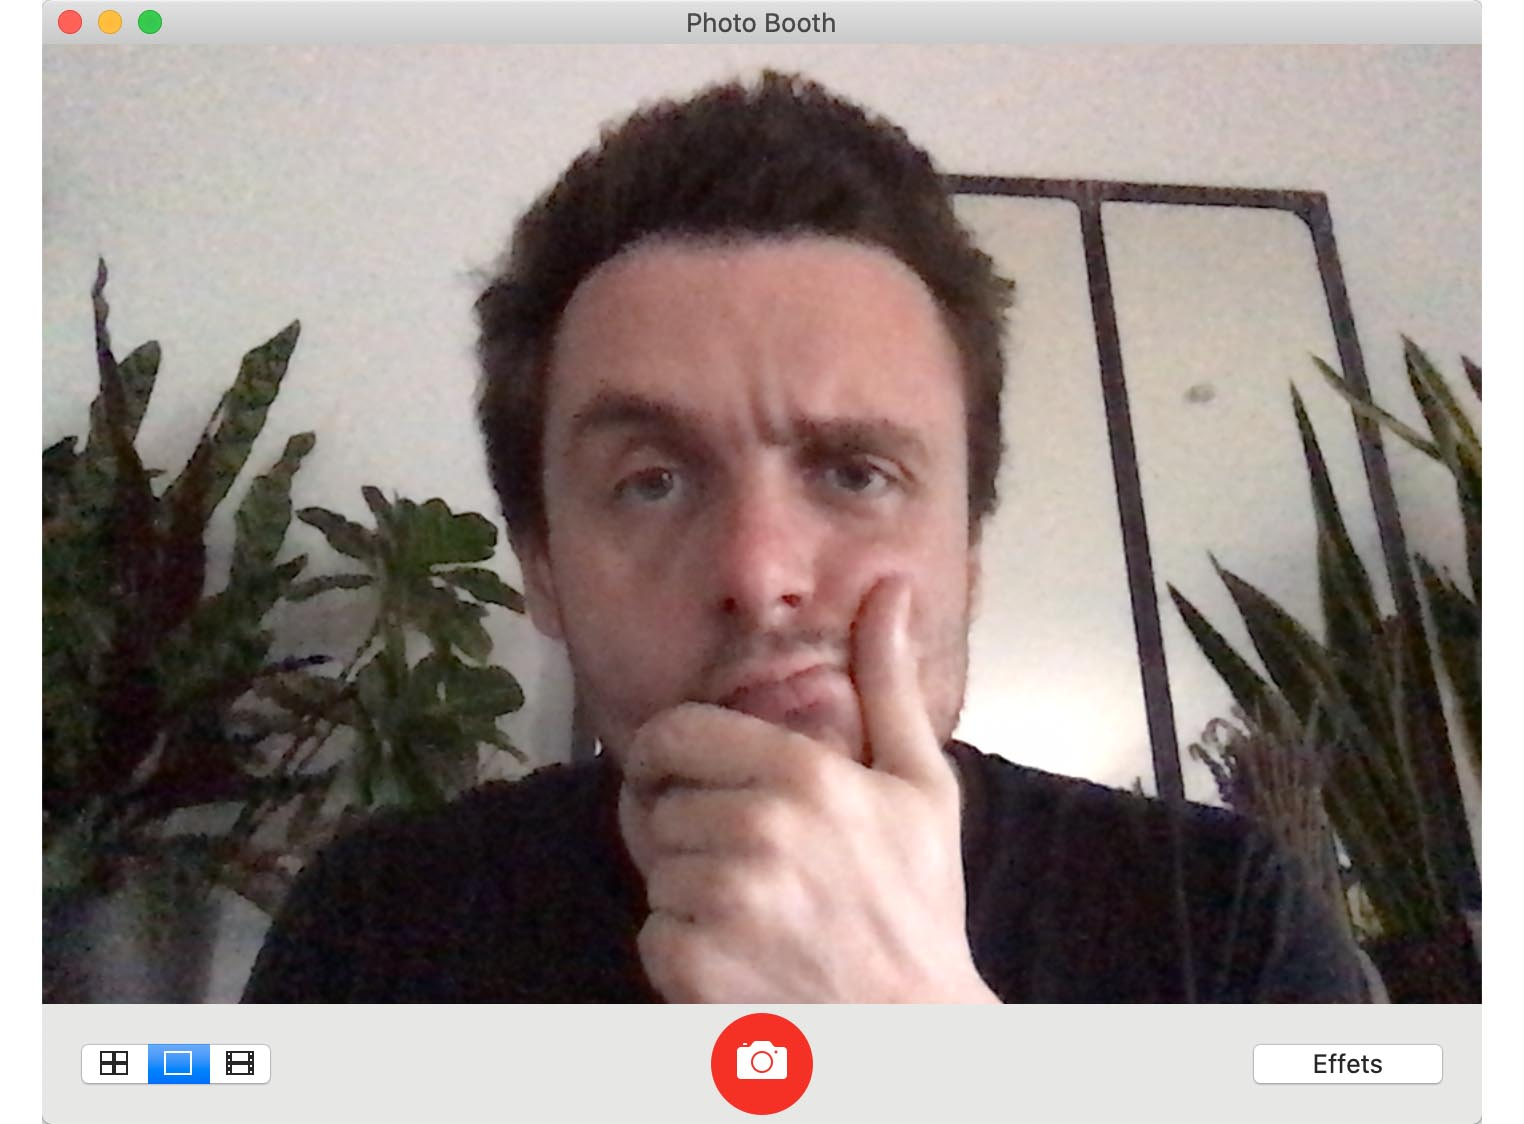 Test MacBook Air 2020 Webcam